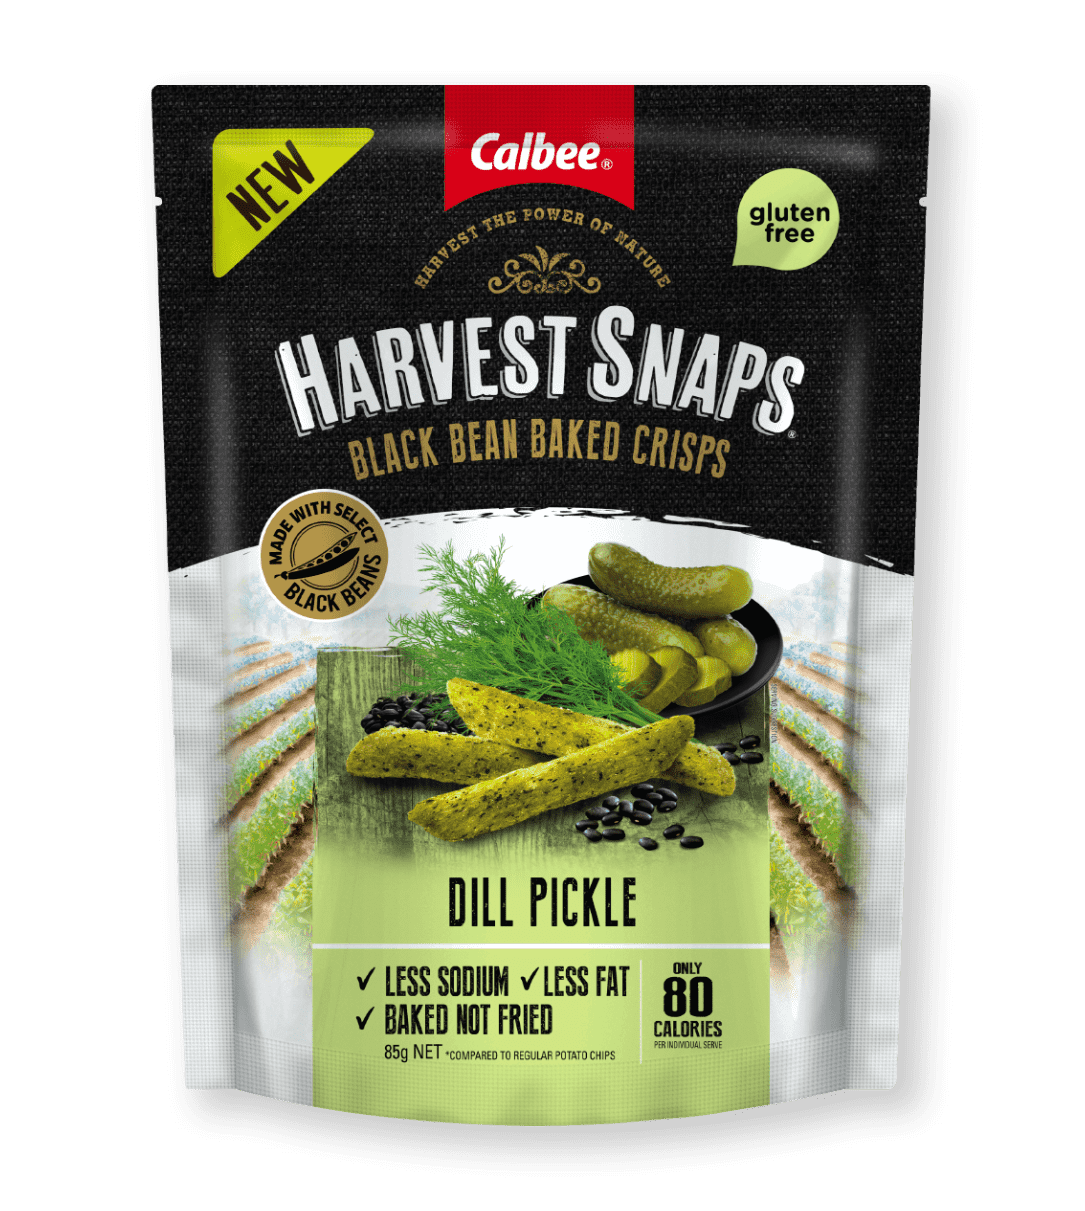 Calbee Australia - Harvest Snaps Dill Pickle Black Bean